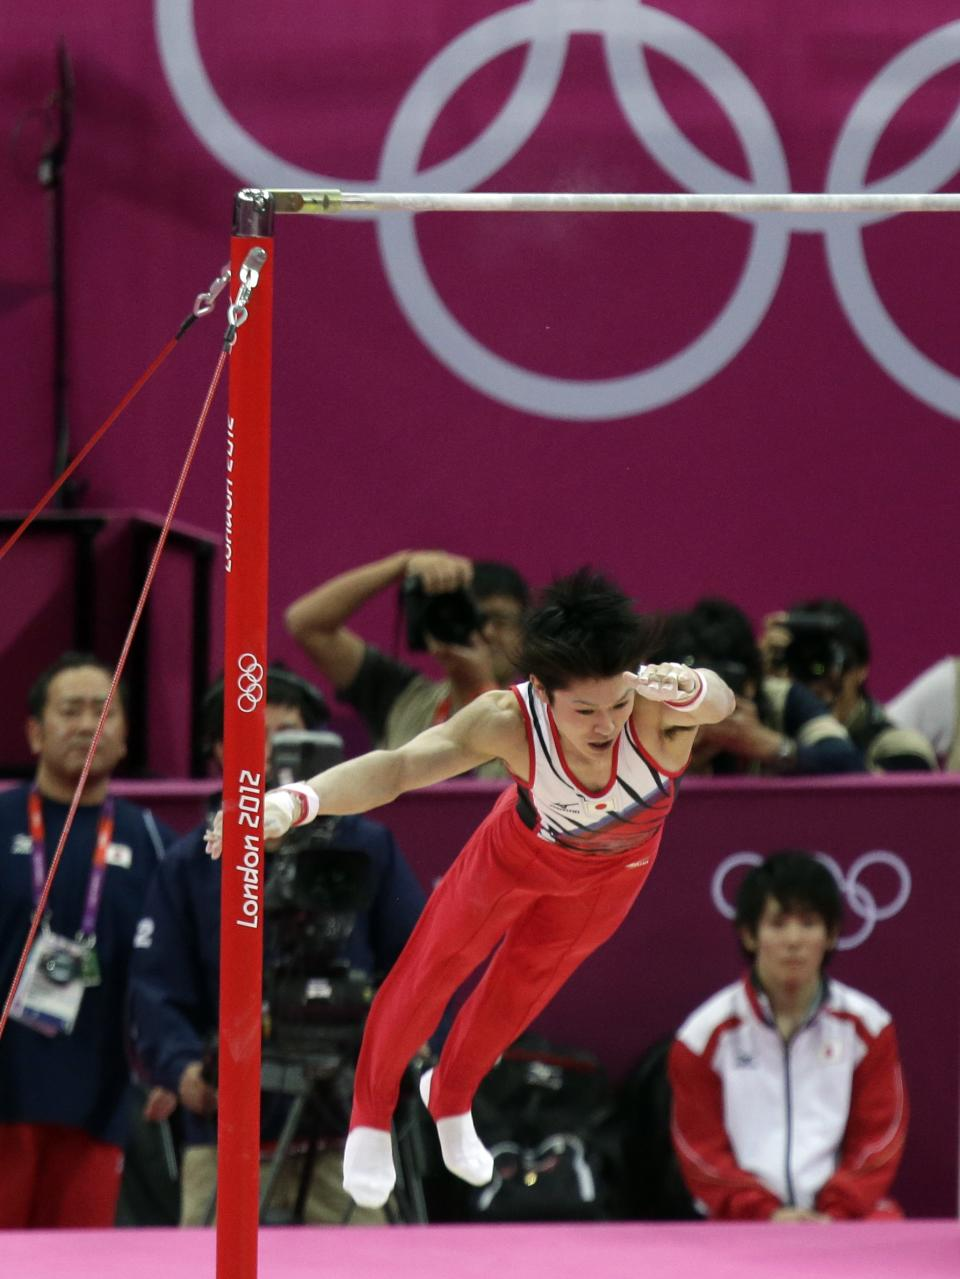 Japanese gymnast Kohei Uchimura falls off the horizontal bar during the Artistic Gymnastic men's qualification at the 2012 Summer Olympics, Saturday, July 28, 2012, in London. (AP Photo/Julie Jacobson)